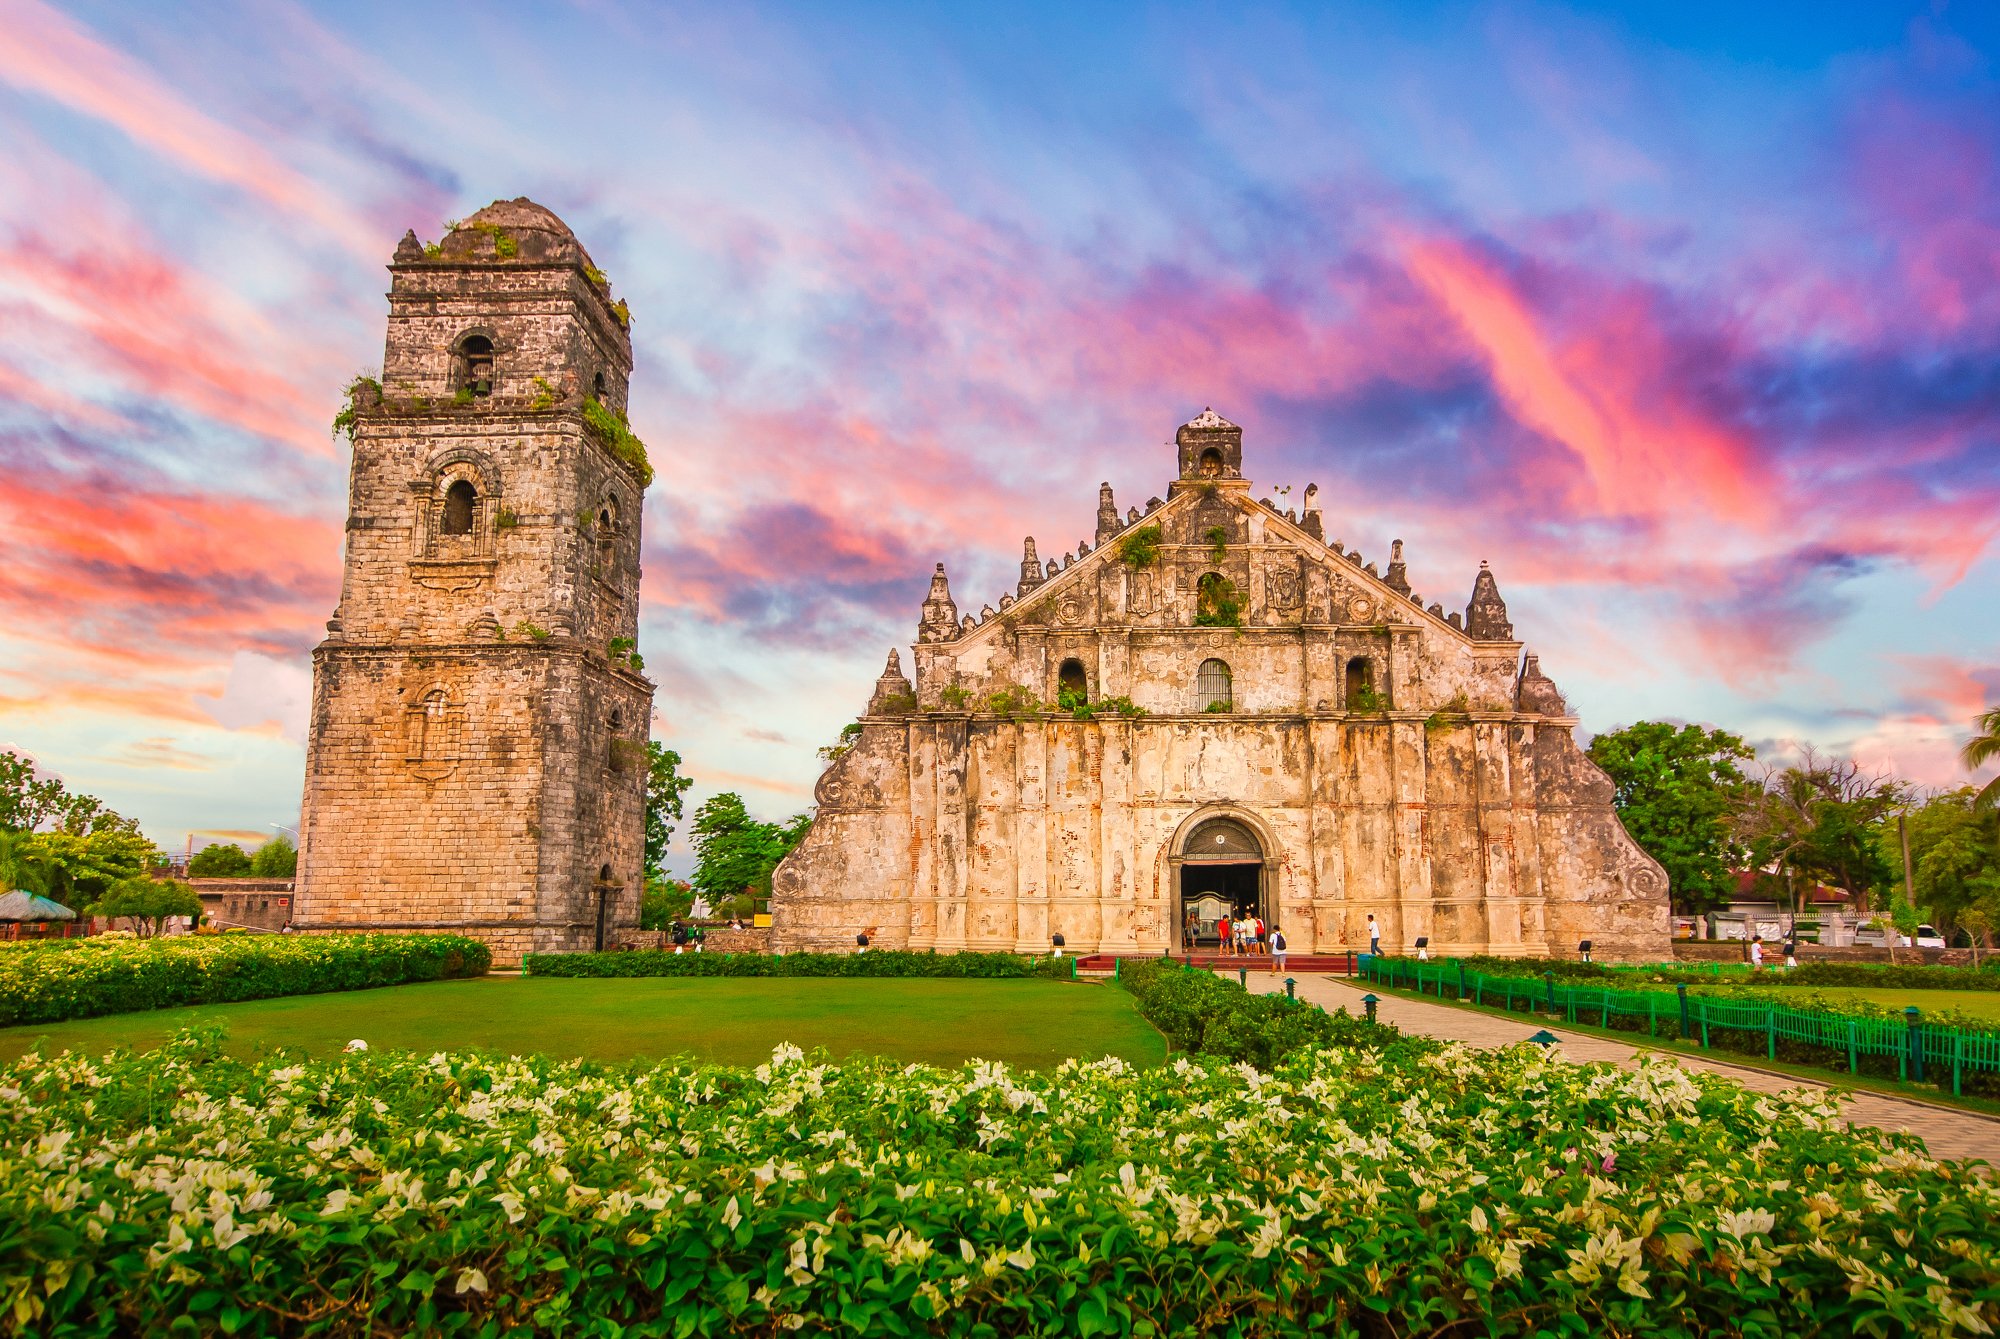 Package Deal to Ilocos Norte with Accommodation, Tours & Transfers for 4 Days & 3 Nights from Manila - day 4